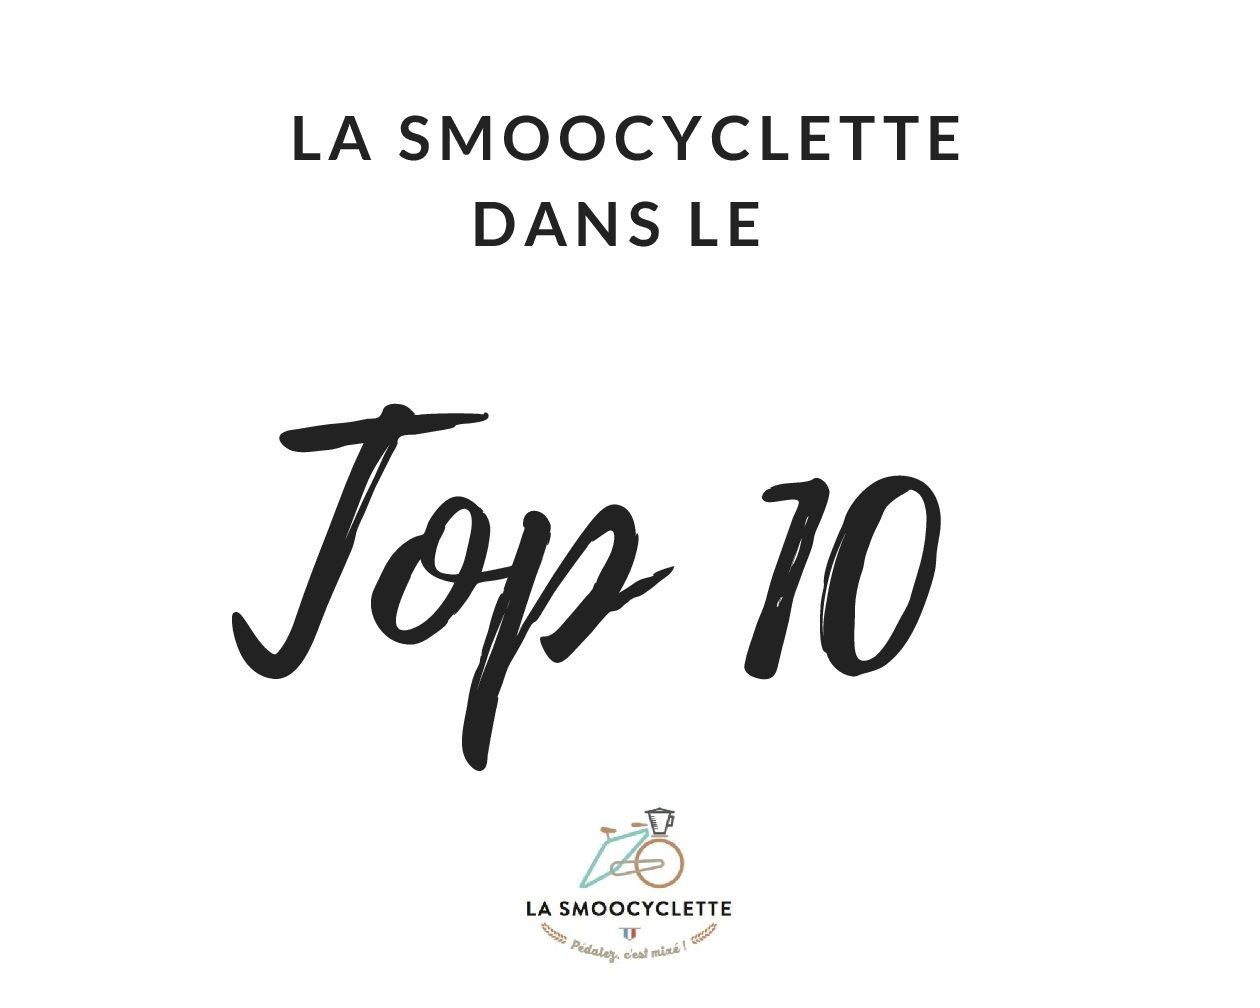 Vélo et innovation : La Smoocyclette dans le top 10 des start-up